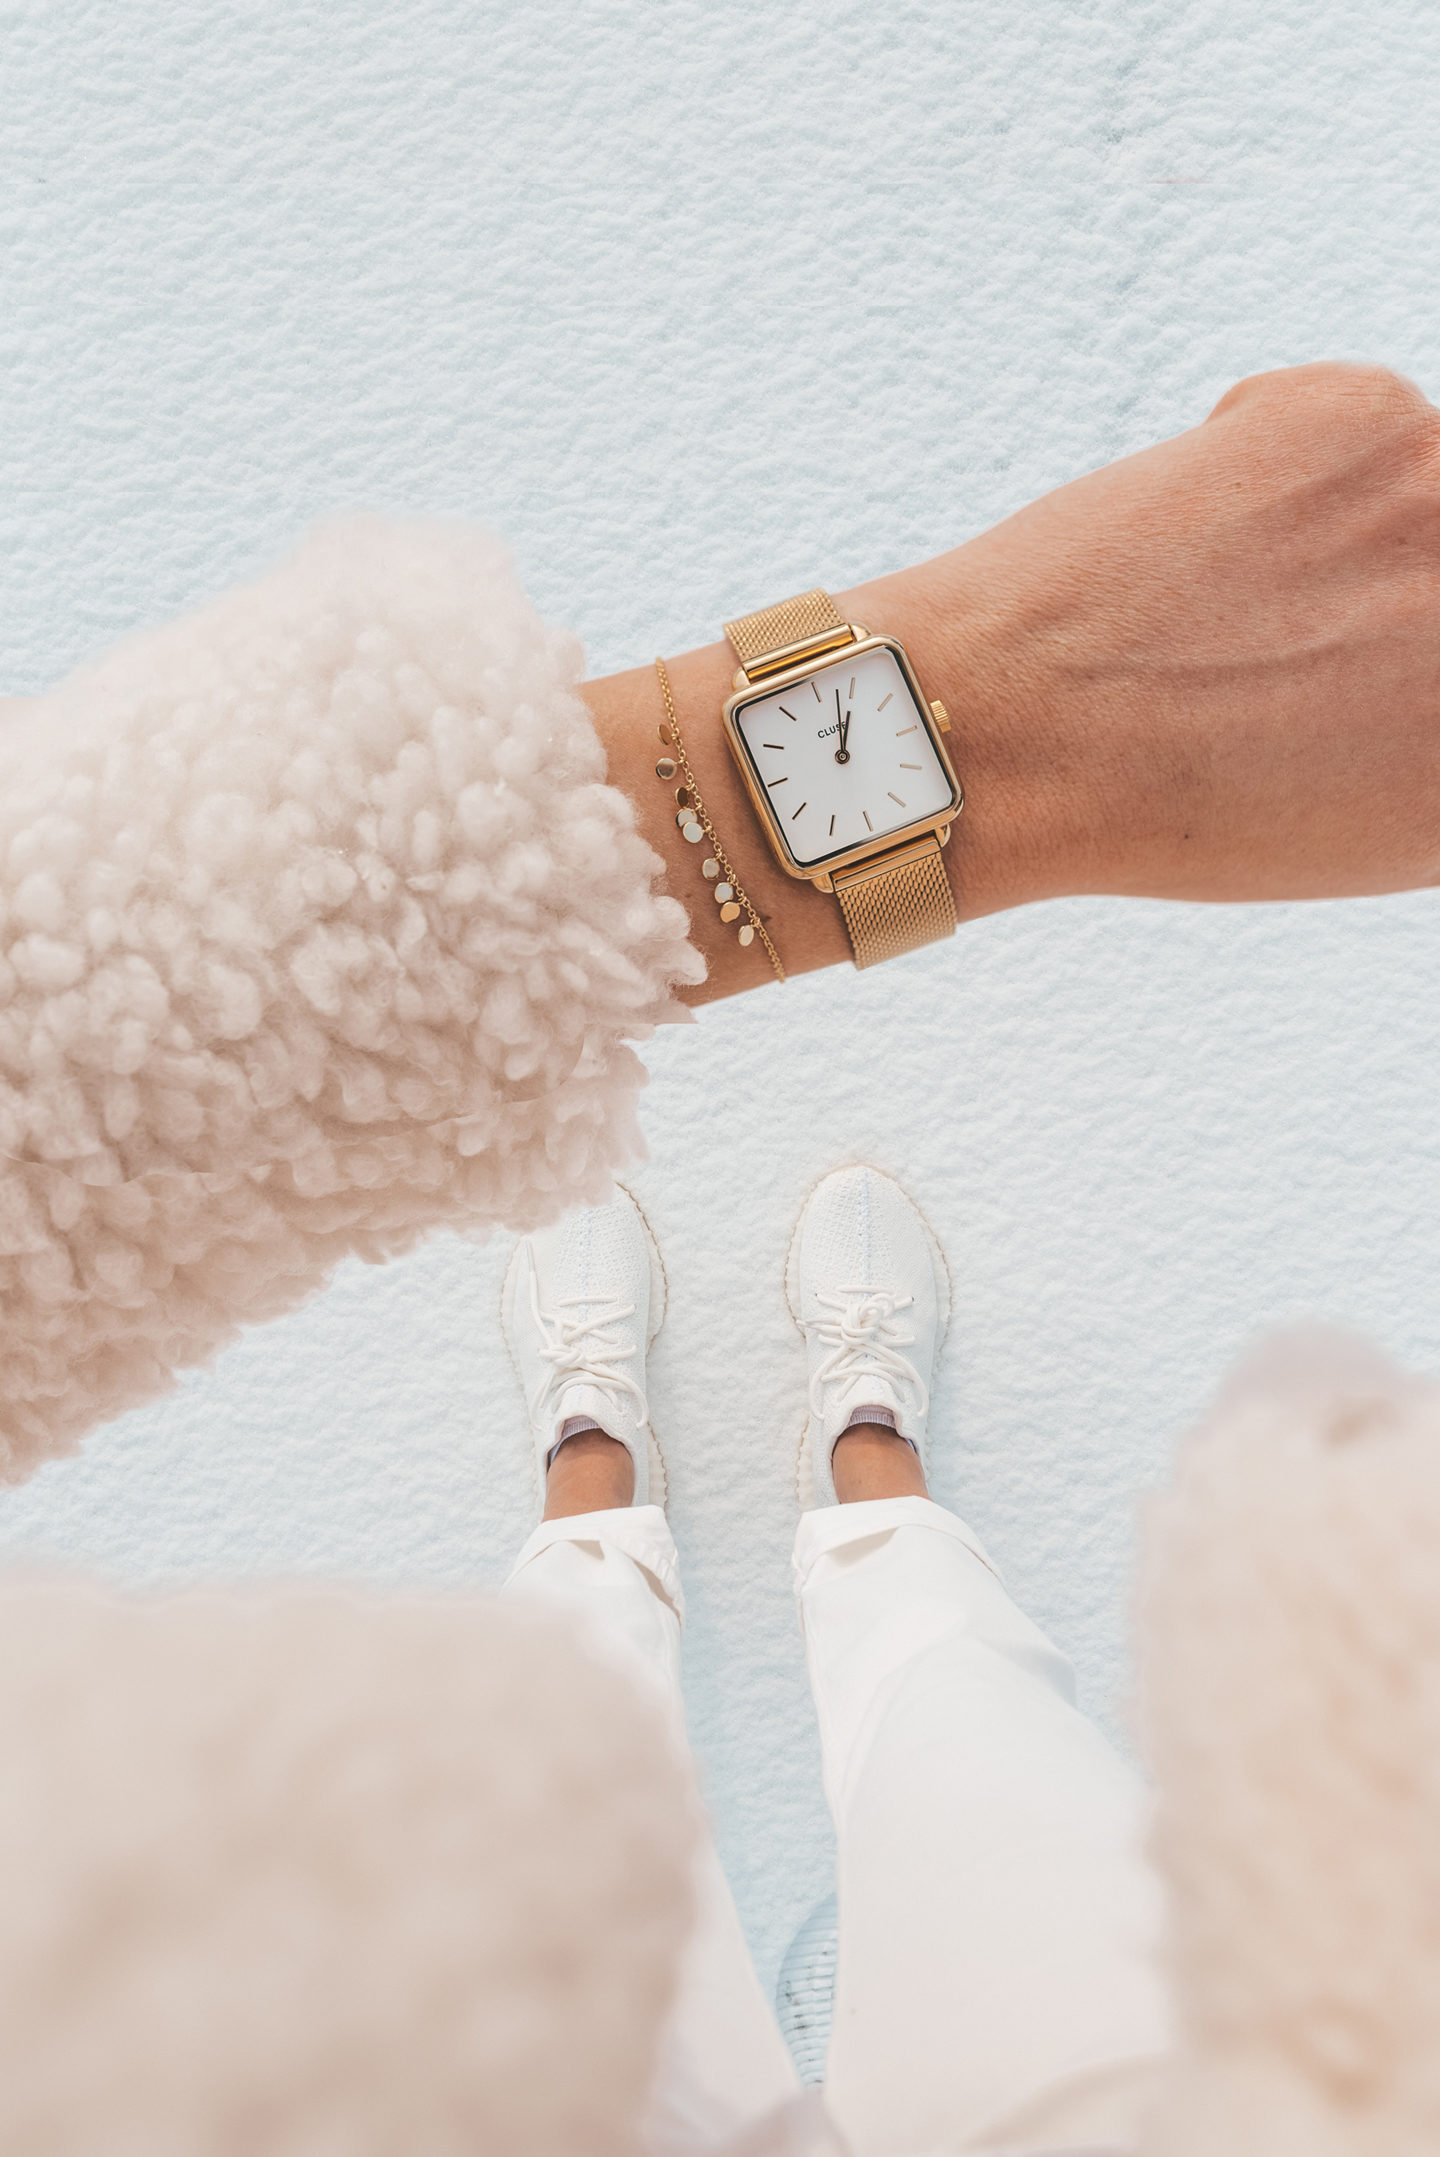 Yeezy cream white cluse watch rosefield bracelet